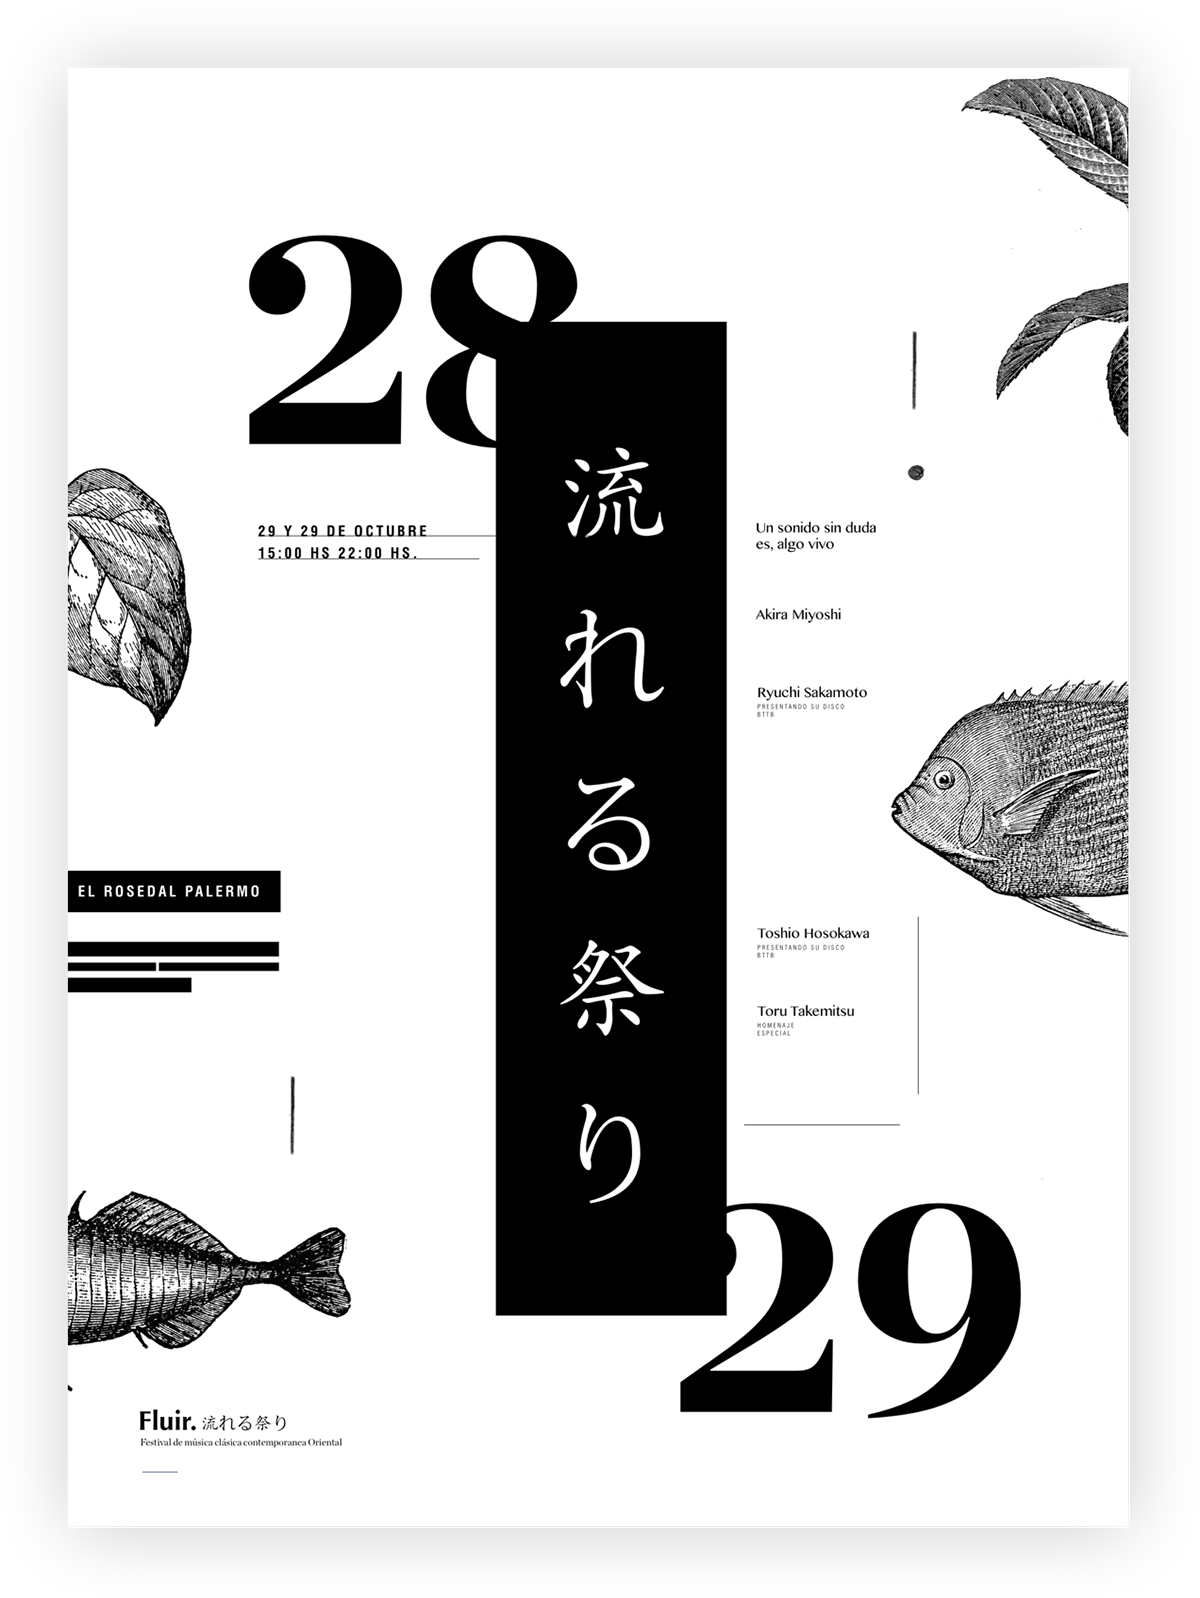 prelude poster japan Classic Layout grid simple clean brand sound nostalgic solemn